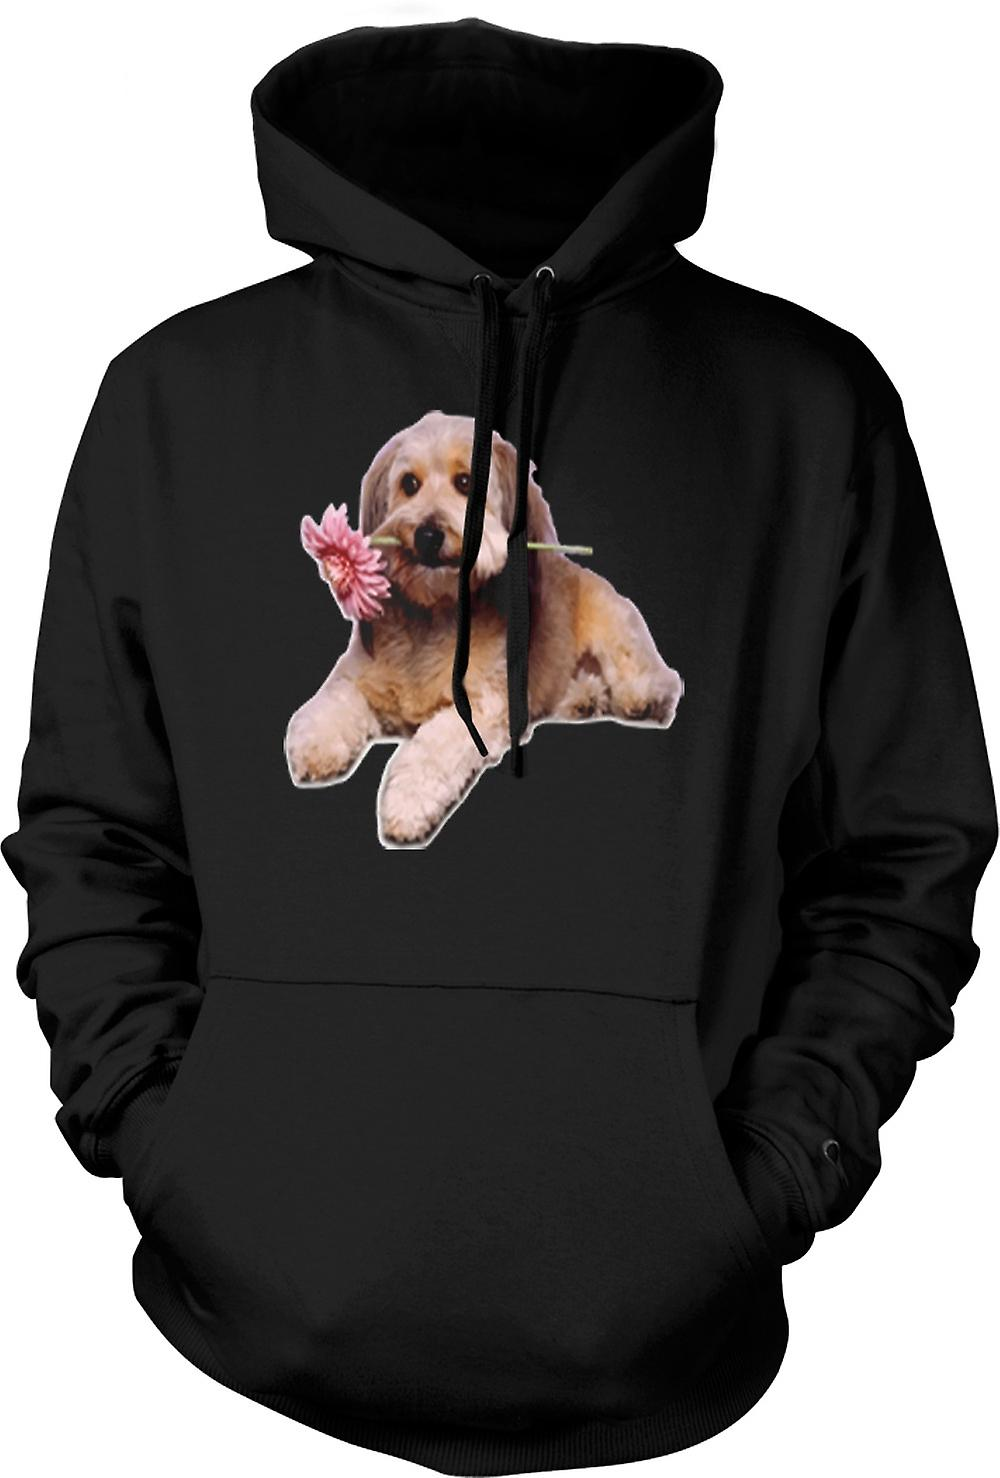 Mens Hoodie - Cute Puppy Dog Portrait